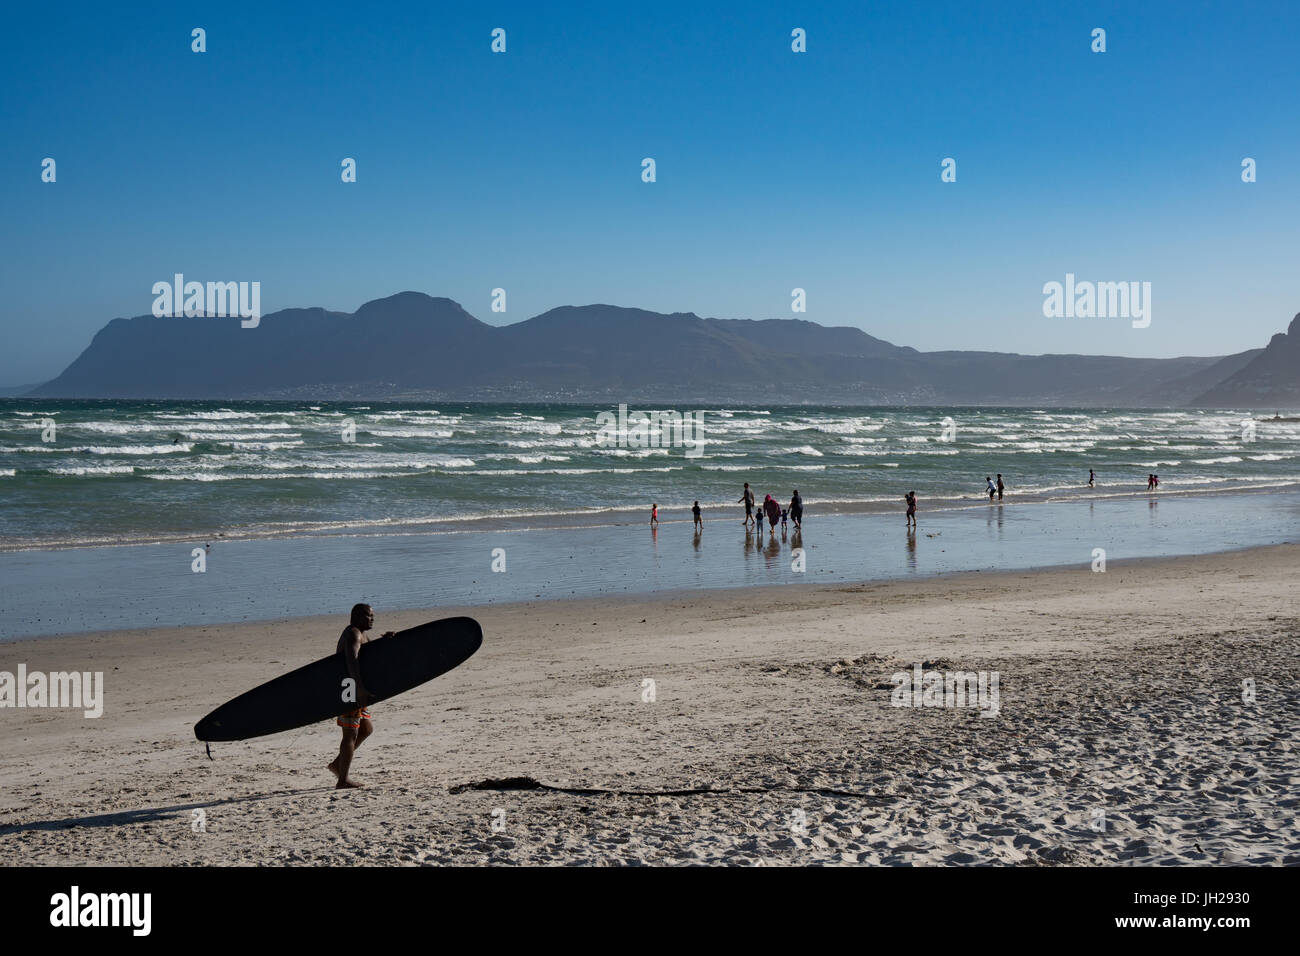 Surfer returning across beach with surfboard, False Bay, Cape Town, South Africa, Africa - Stock Image